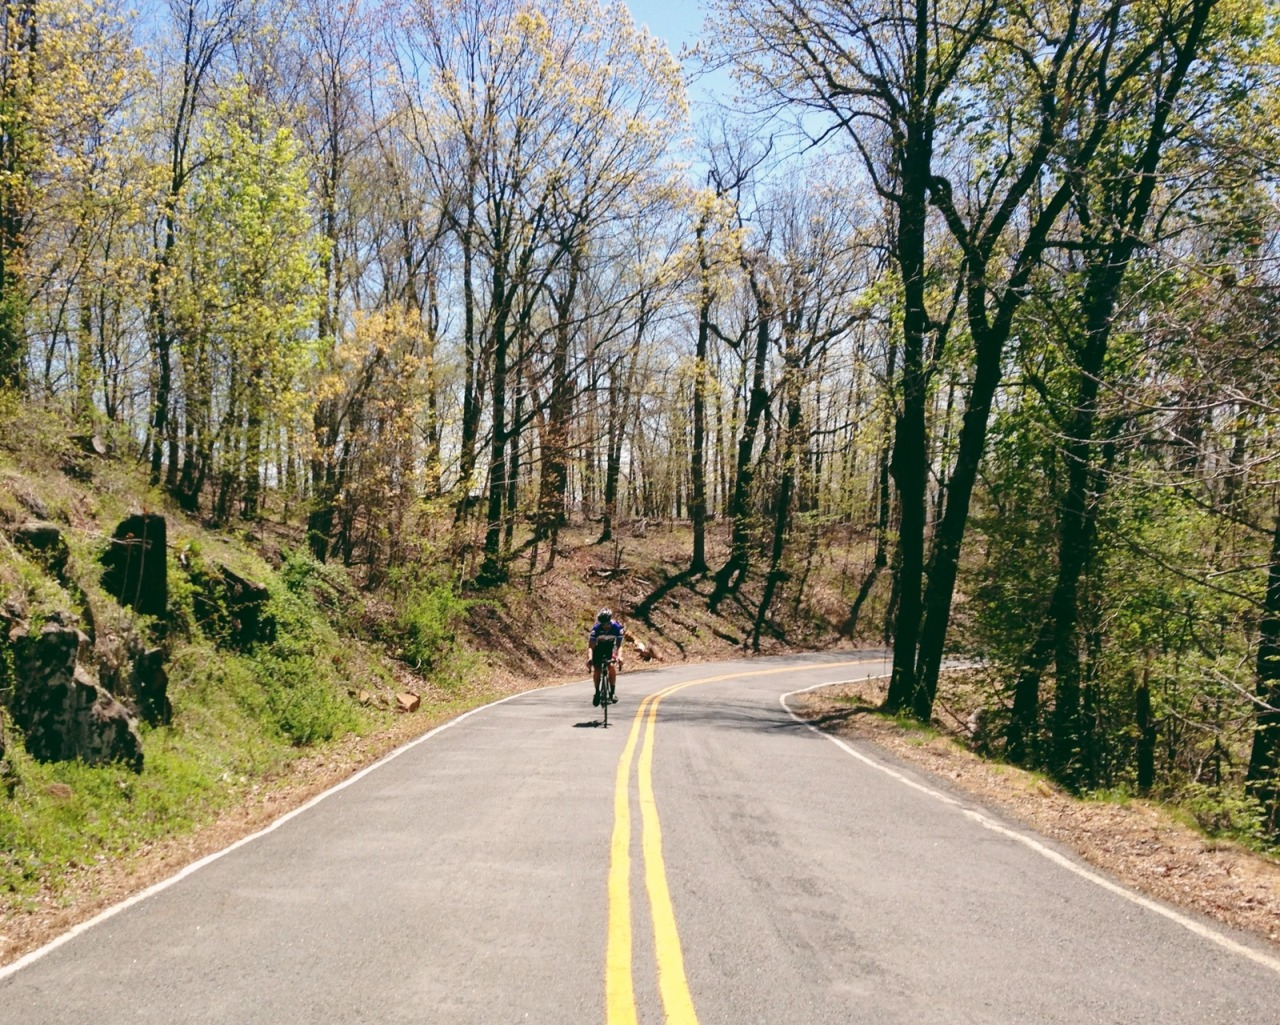 WEDNESDAY IS HILL DAYEarlier this week, we took the back roads to Nyack for the first time in a few months. Phil had a great day and destroyed all the big climbs of the day, not to mention pulling us the entire way home on 9W.